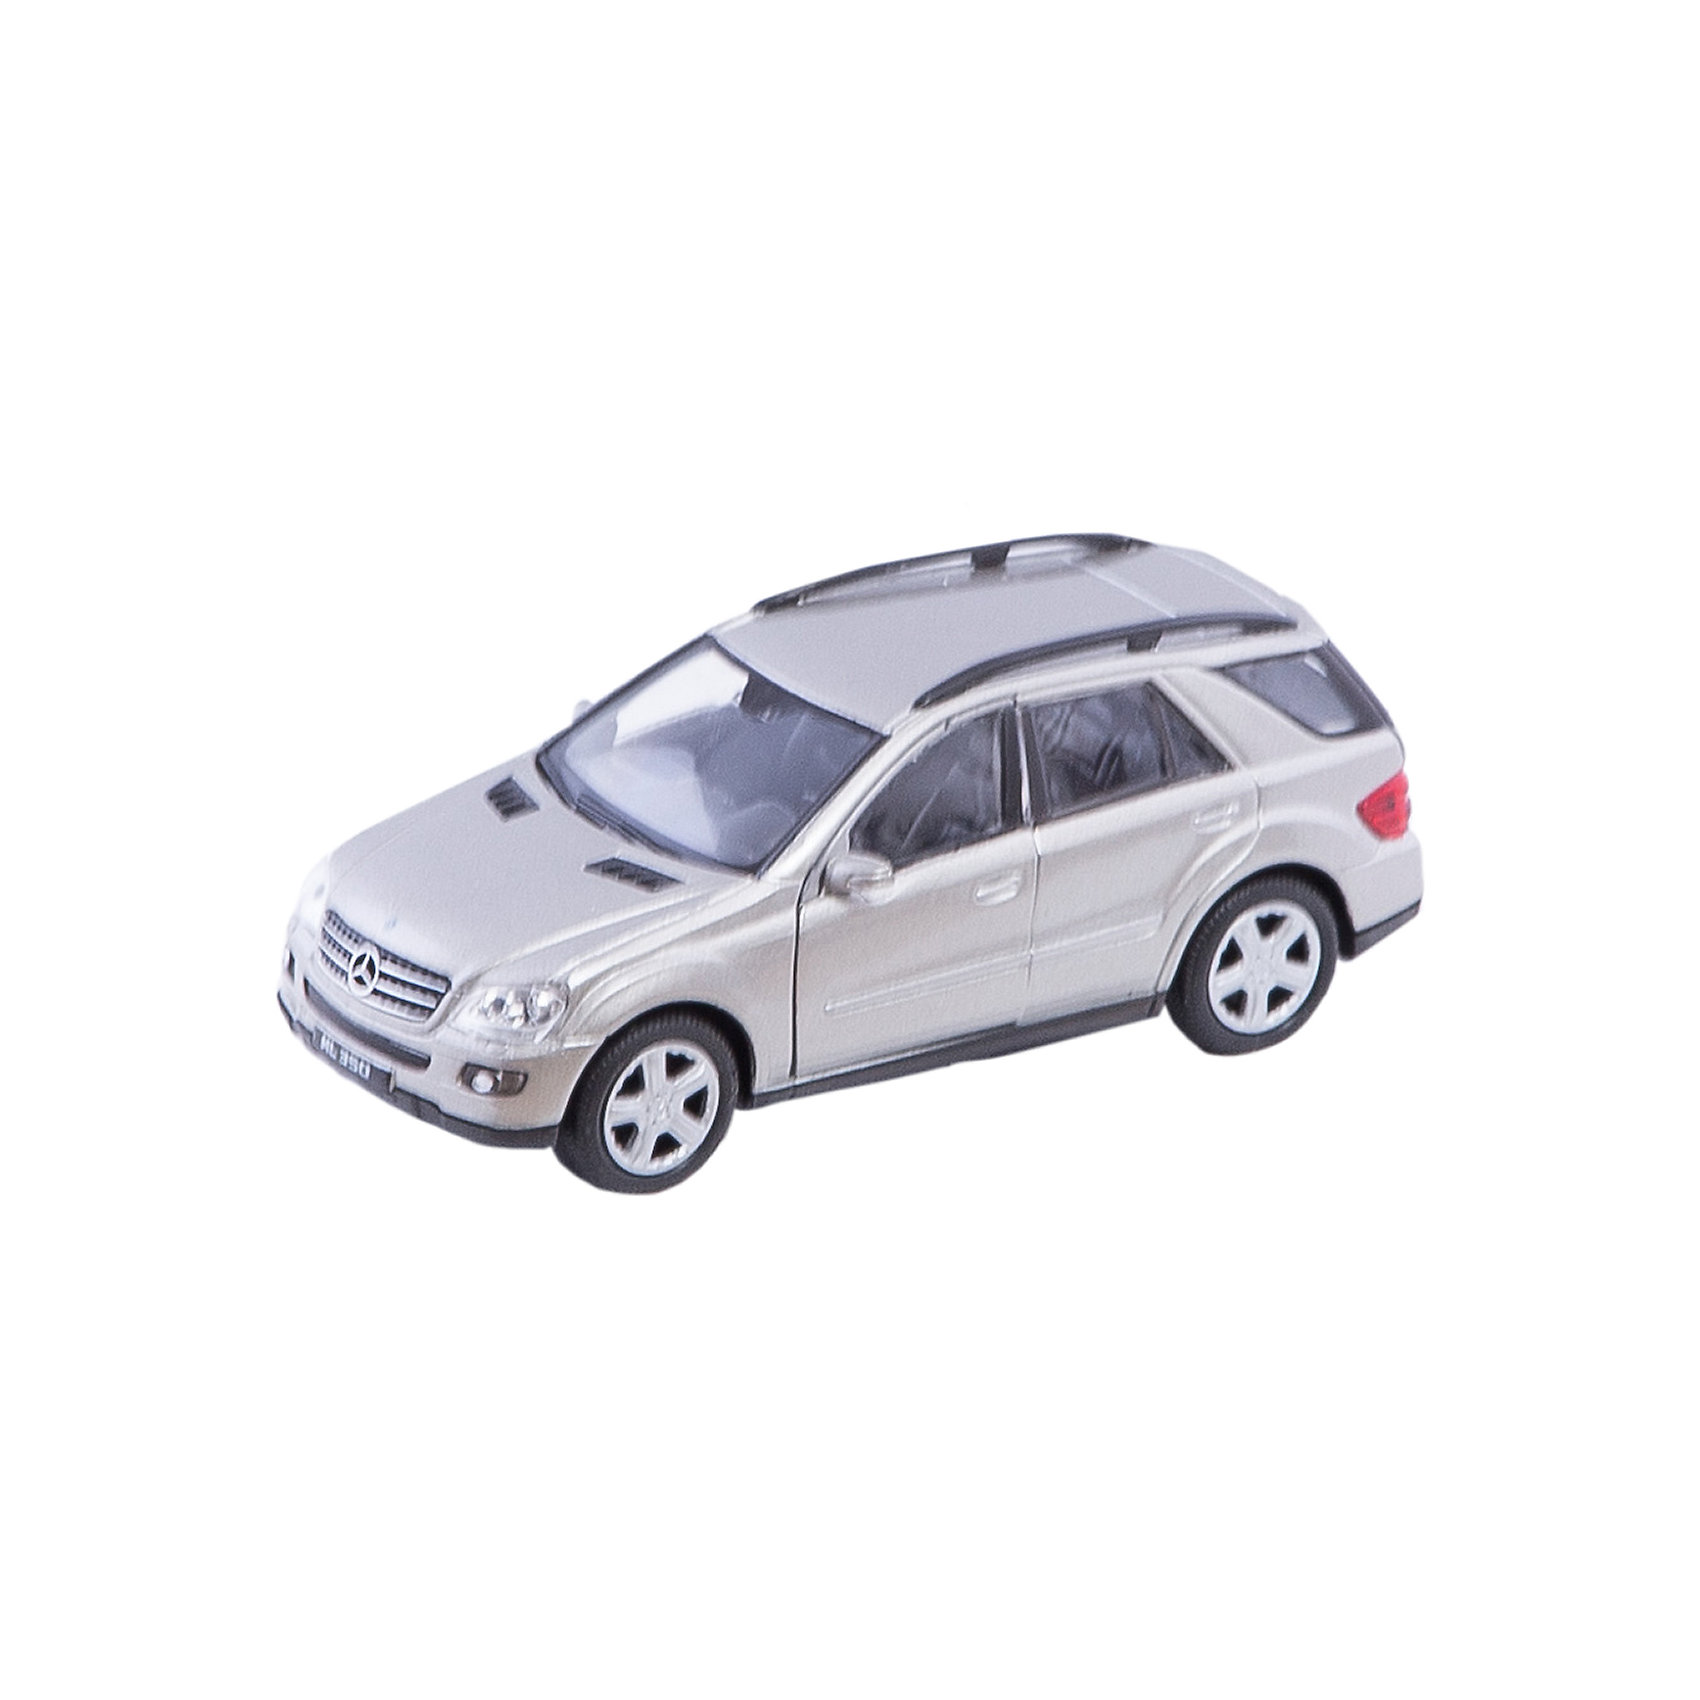 Welly Welly Модель машины 1:34-39 Mercedes-Benz ML350 welly welly гараж 3 машины и вертолет